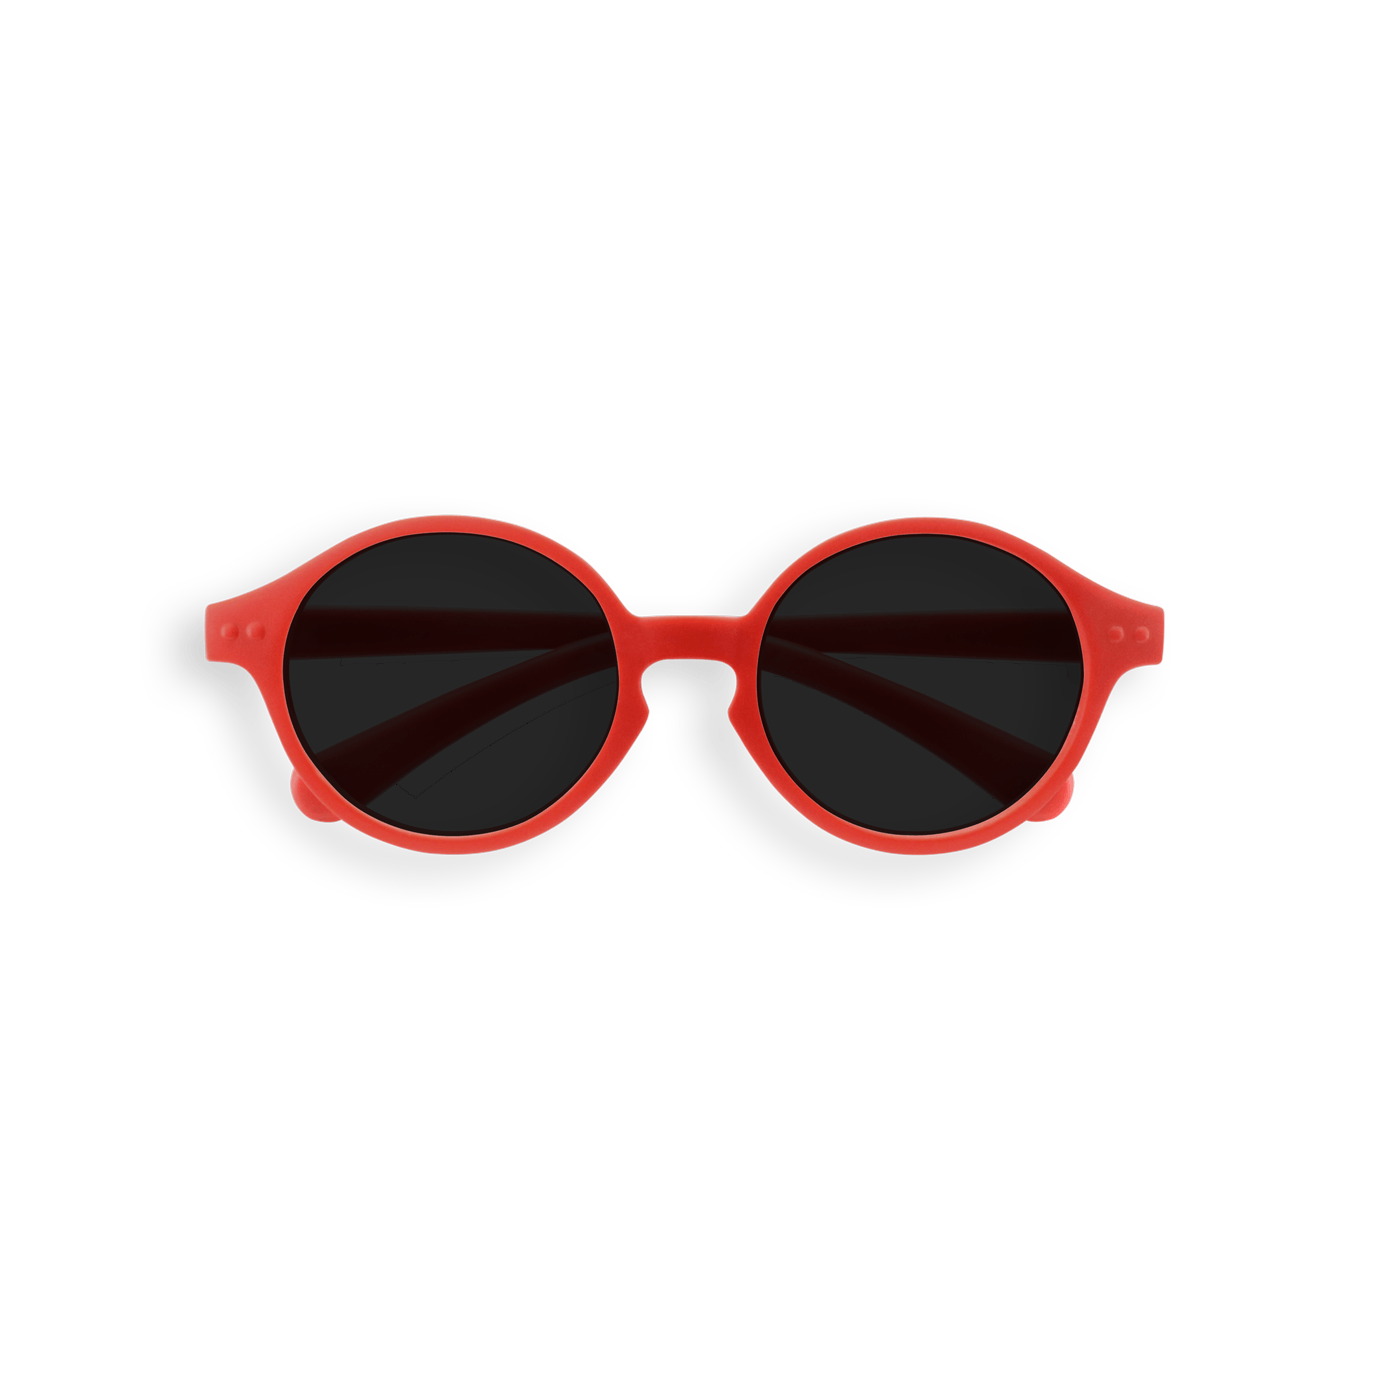 IZIPIZI Kids Sunglasses - Polarized / Neighborhood Goods